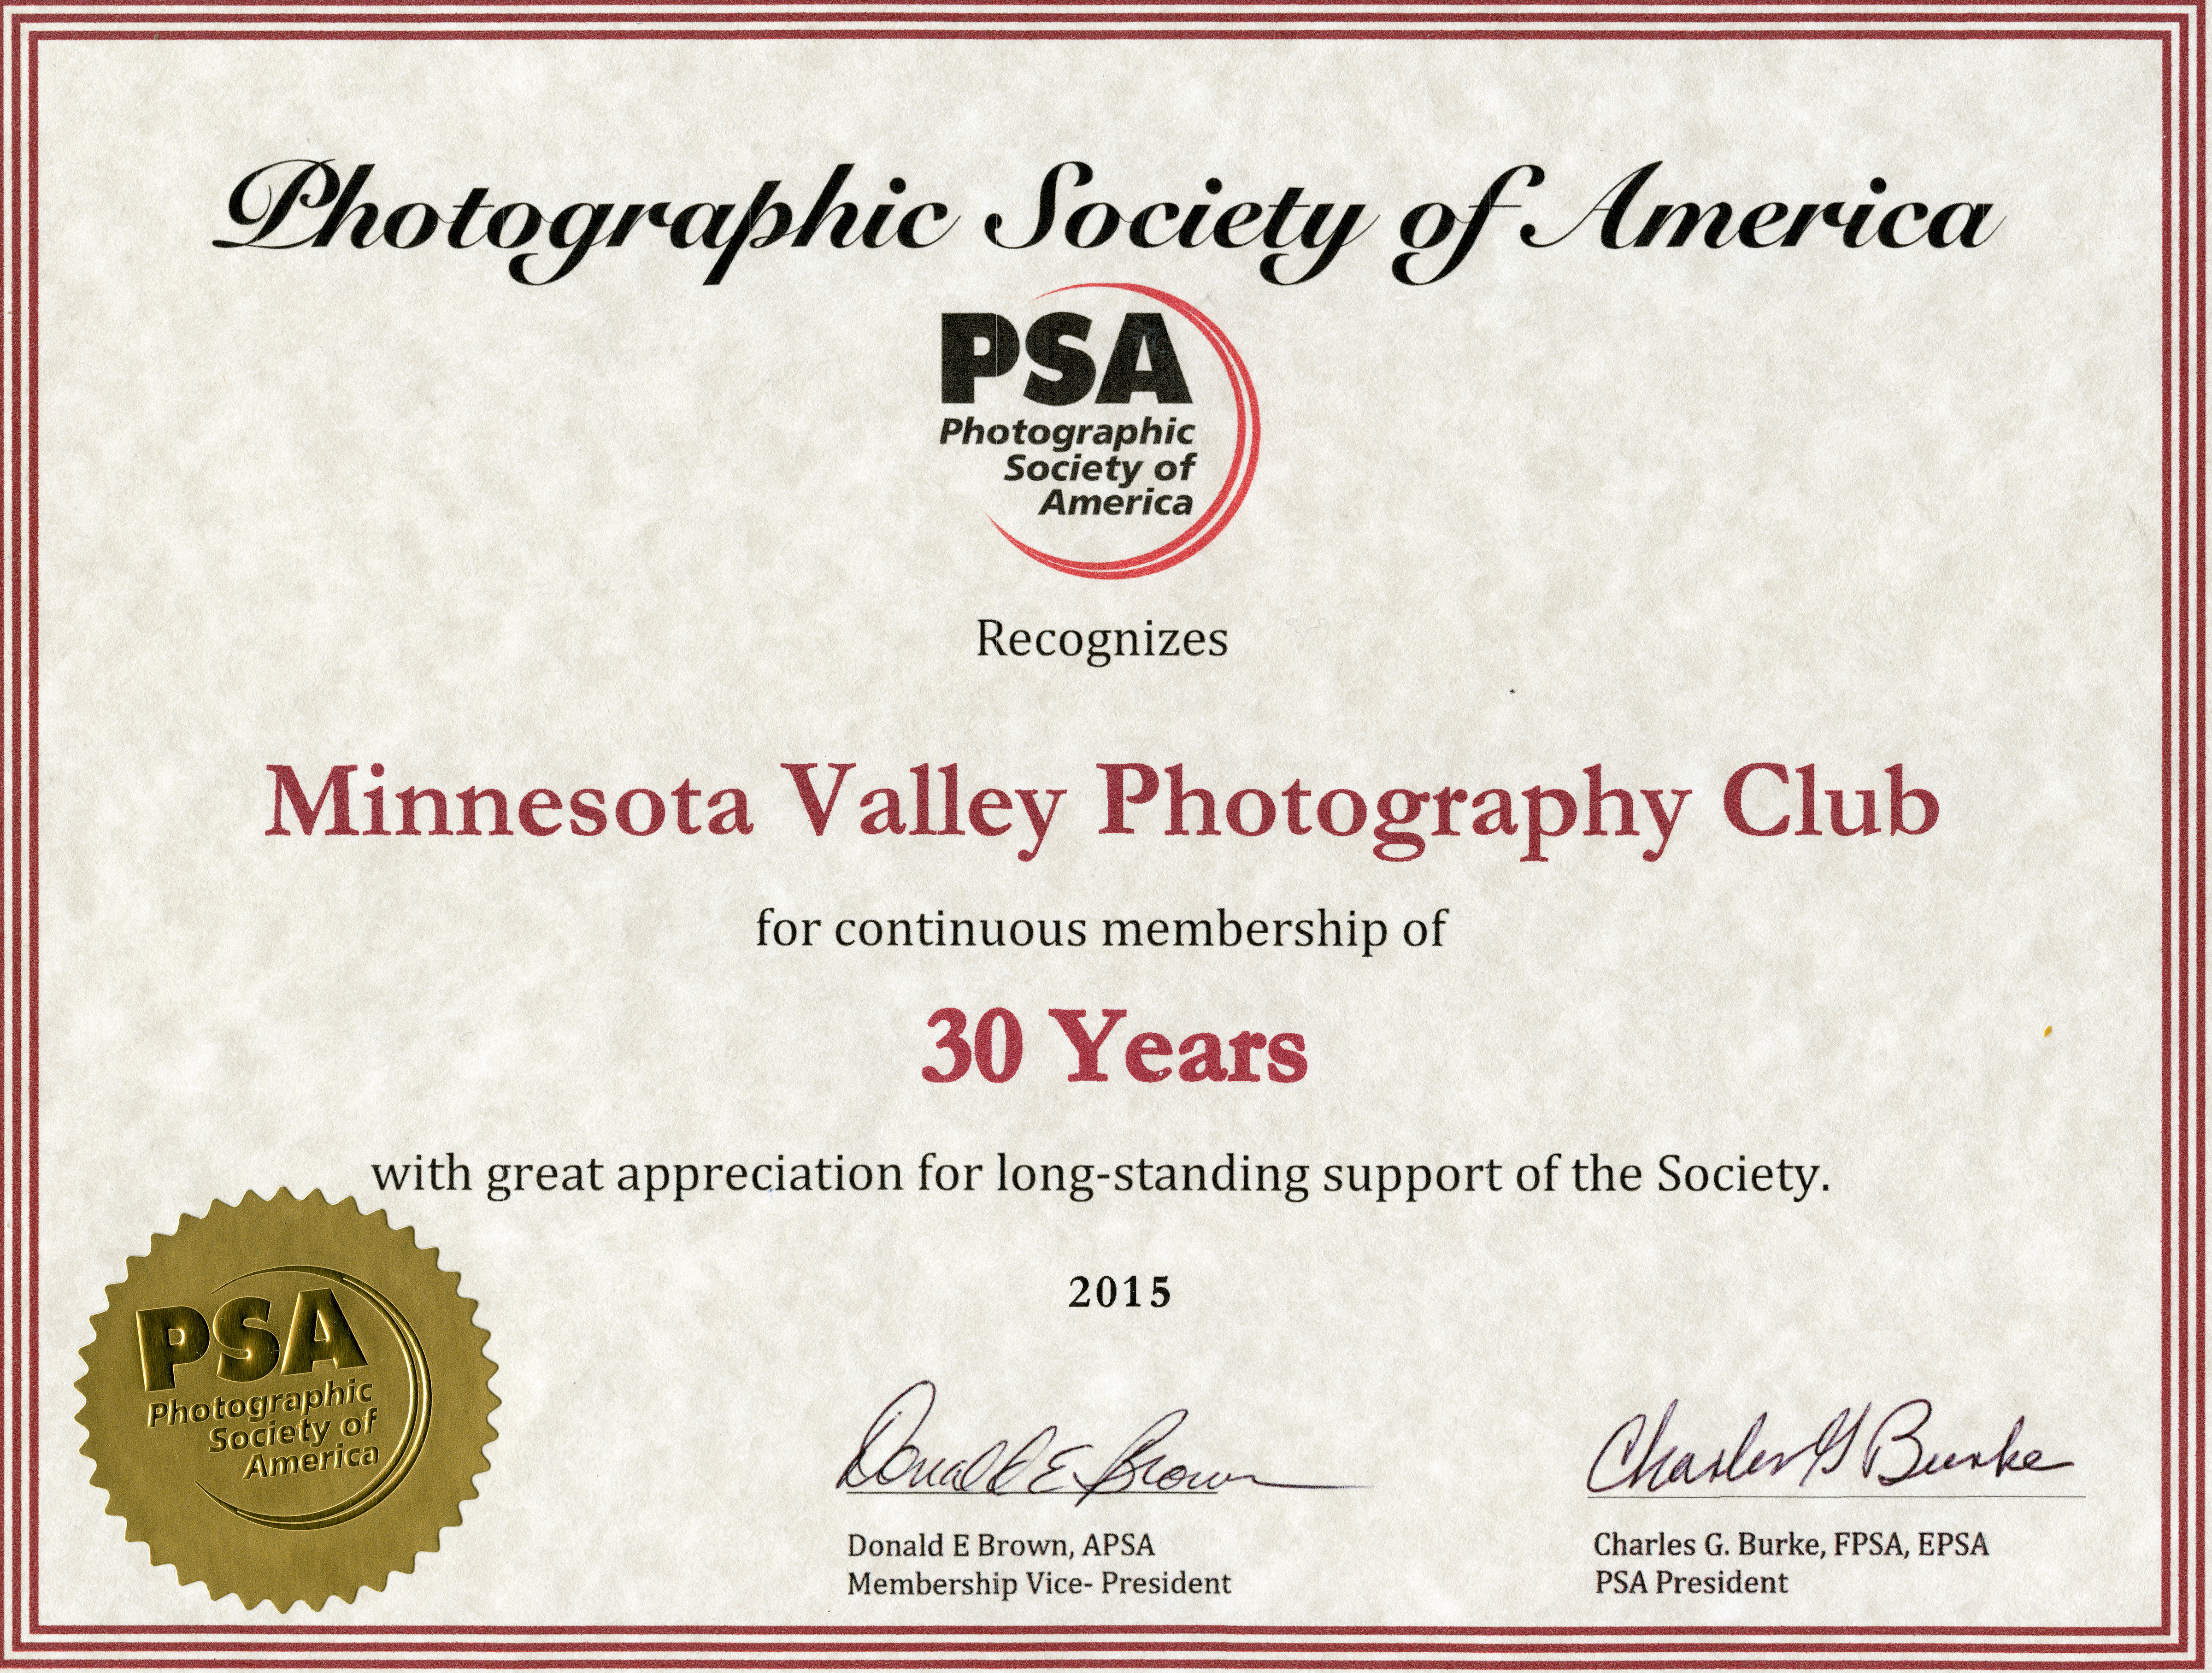 About mvpc minnesota valley photo club minnesota valley photography club mvpc was founded in 1984 it has a membership of over 100 individuals representing all ages backgrounds interest 1betcityfo Image collections